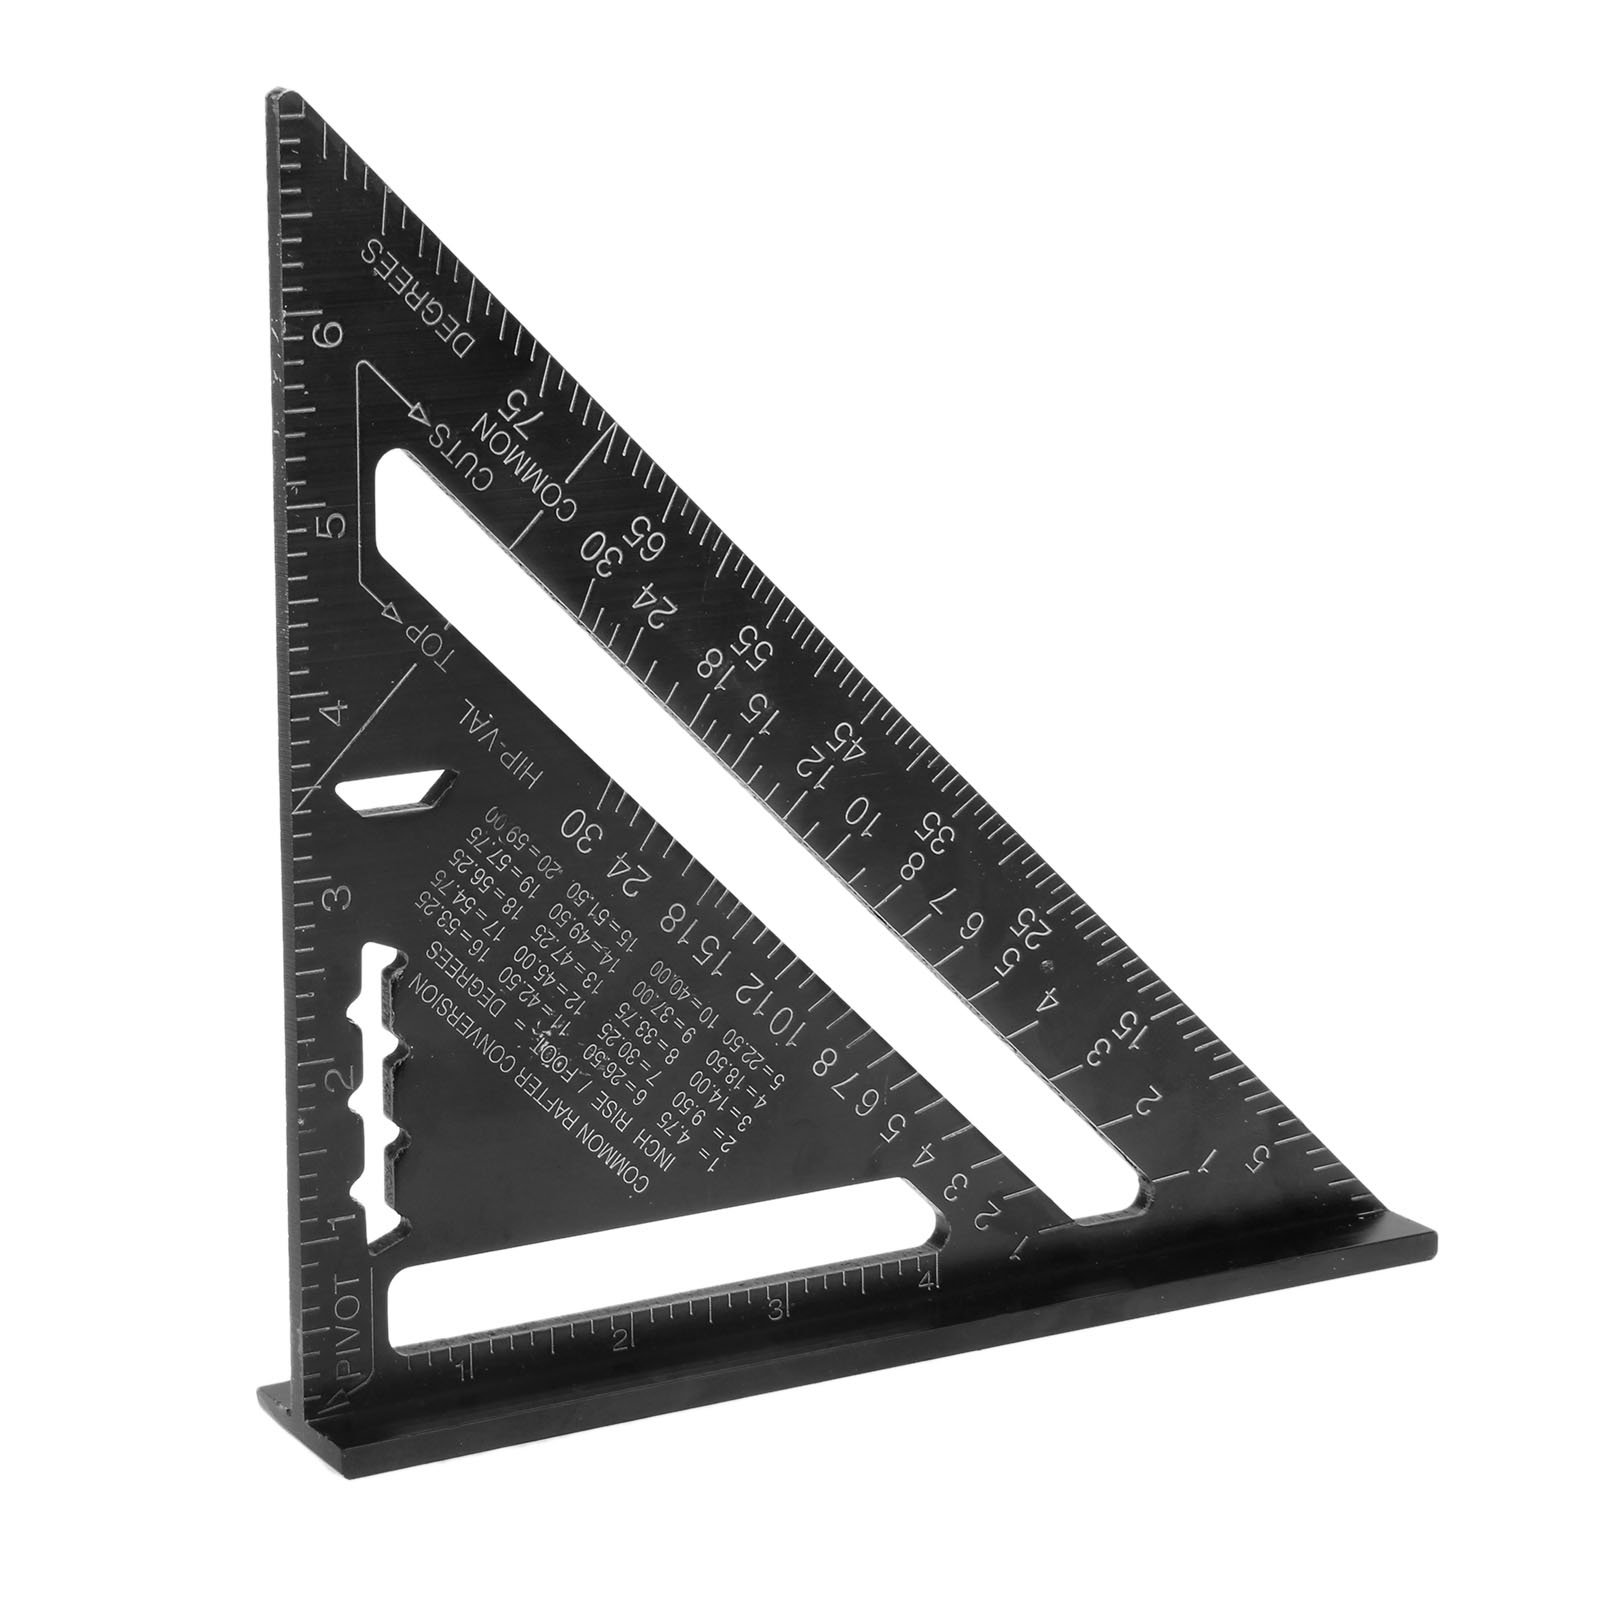 7 Inch Aluminum Alloy Black Triangle Woodworking Ruler Angle Protractor Gauge by Hicello